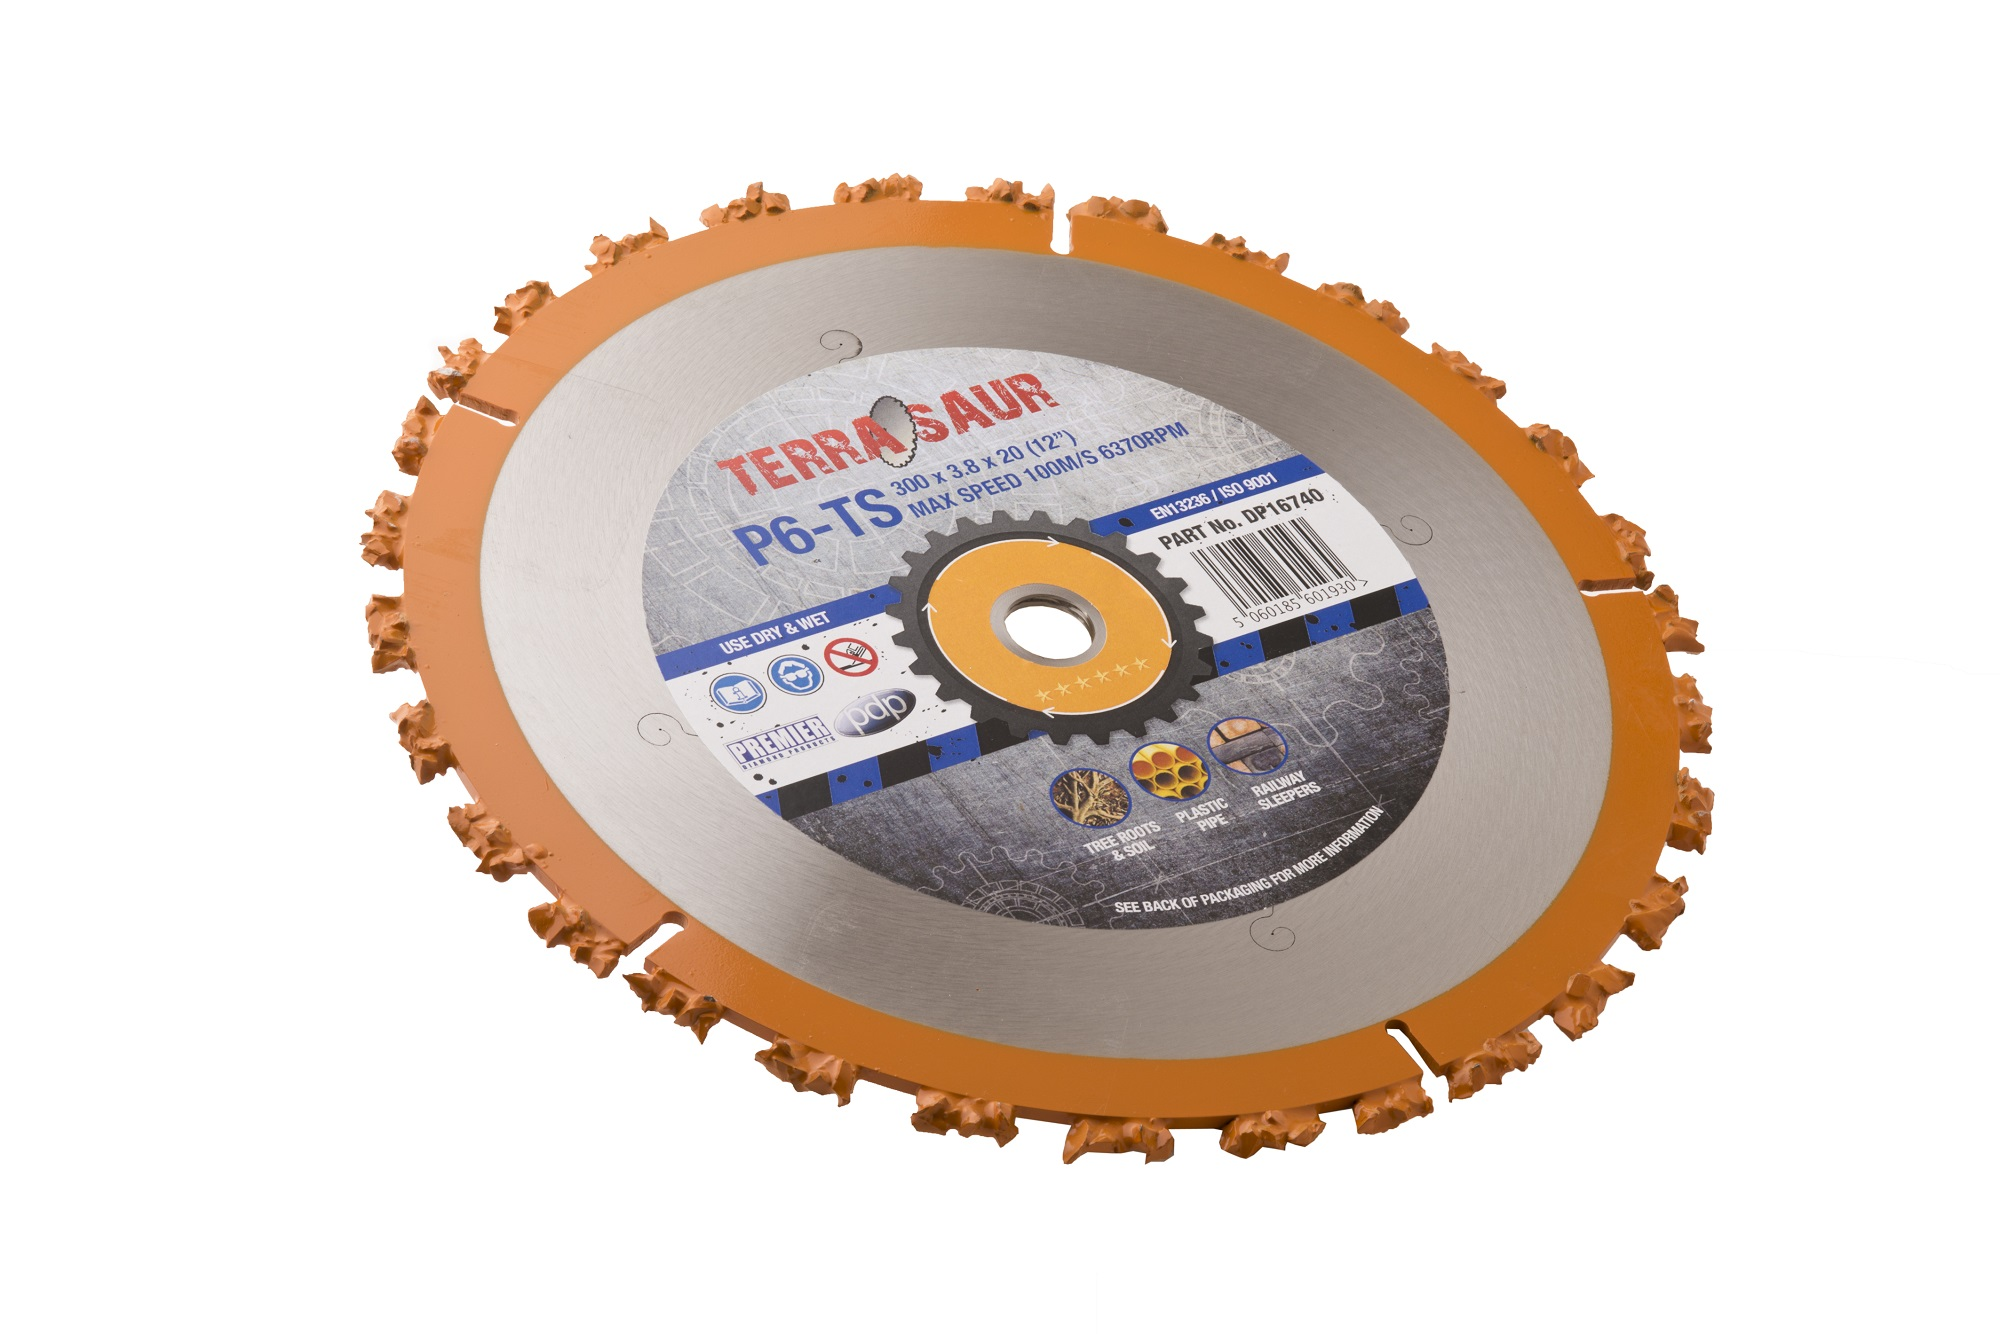 230 x 3.5 x 22.2mm circular P6TS Terrasaur carbide cluster saw blade with orange rim and grey Terrasaur branded label in centre